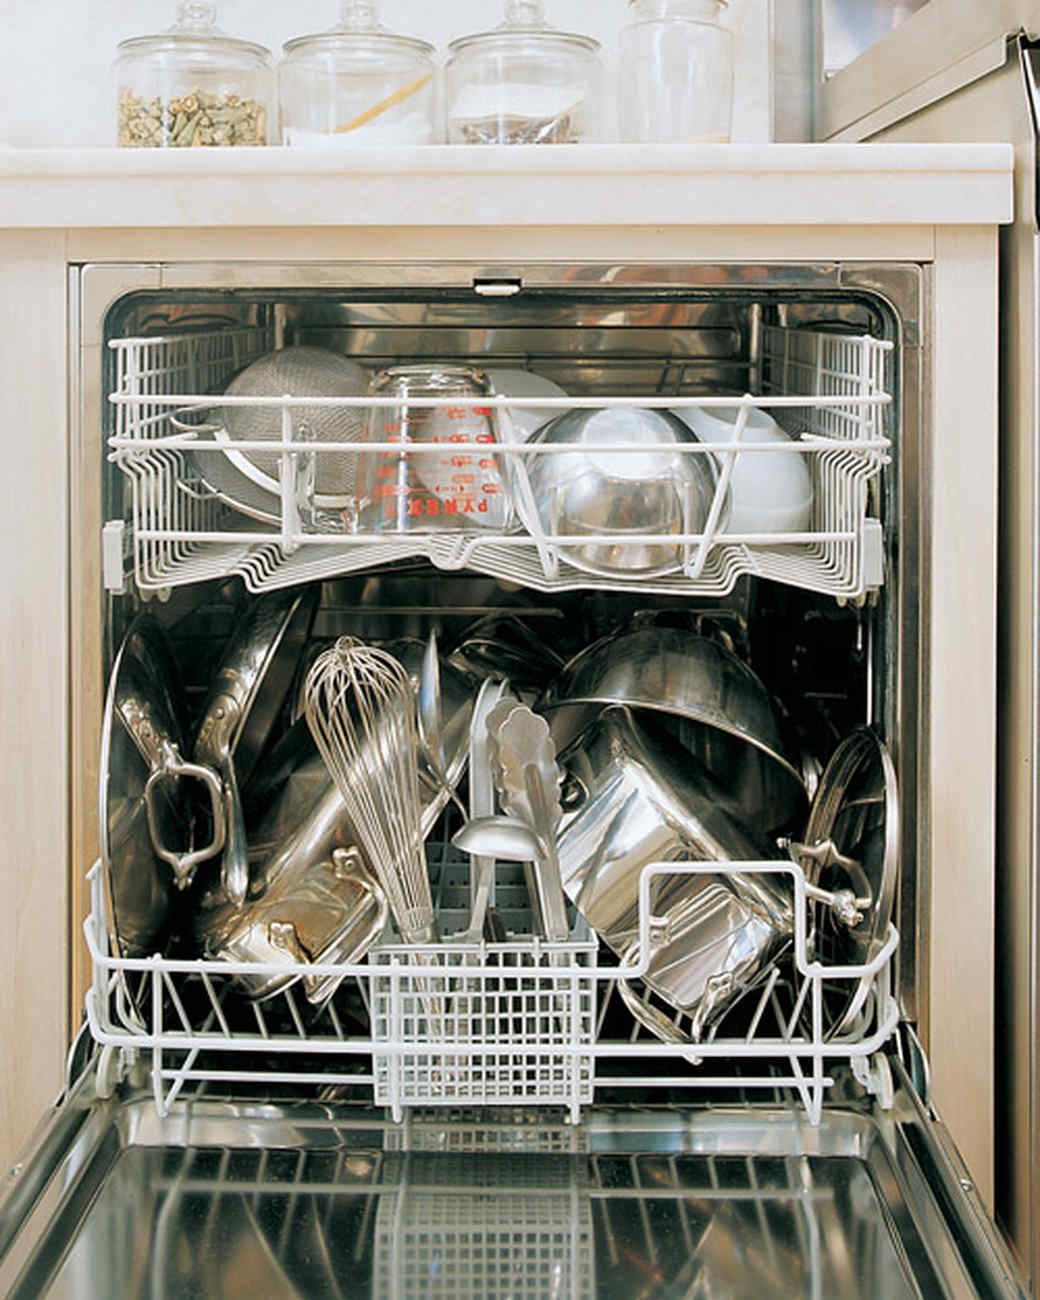 ml711_1197_dishwasher_pans.jpg